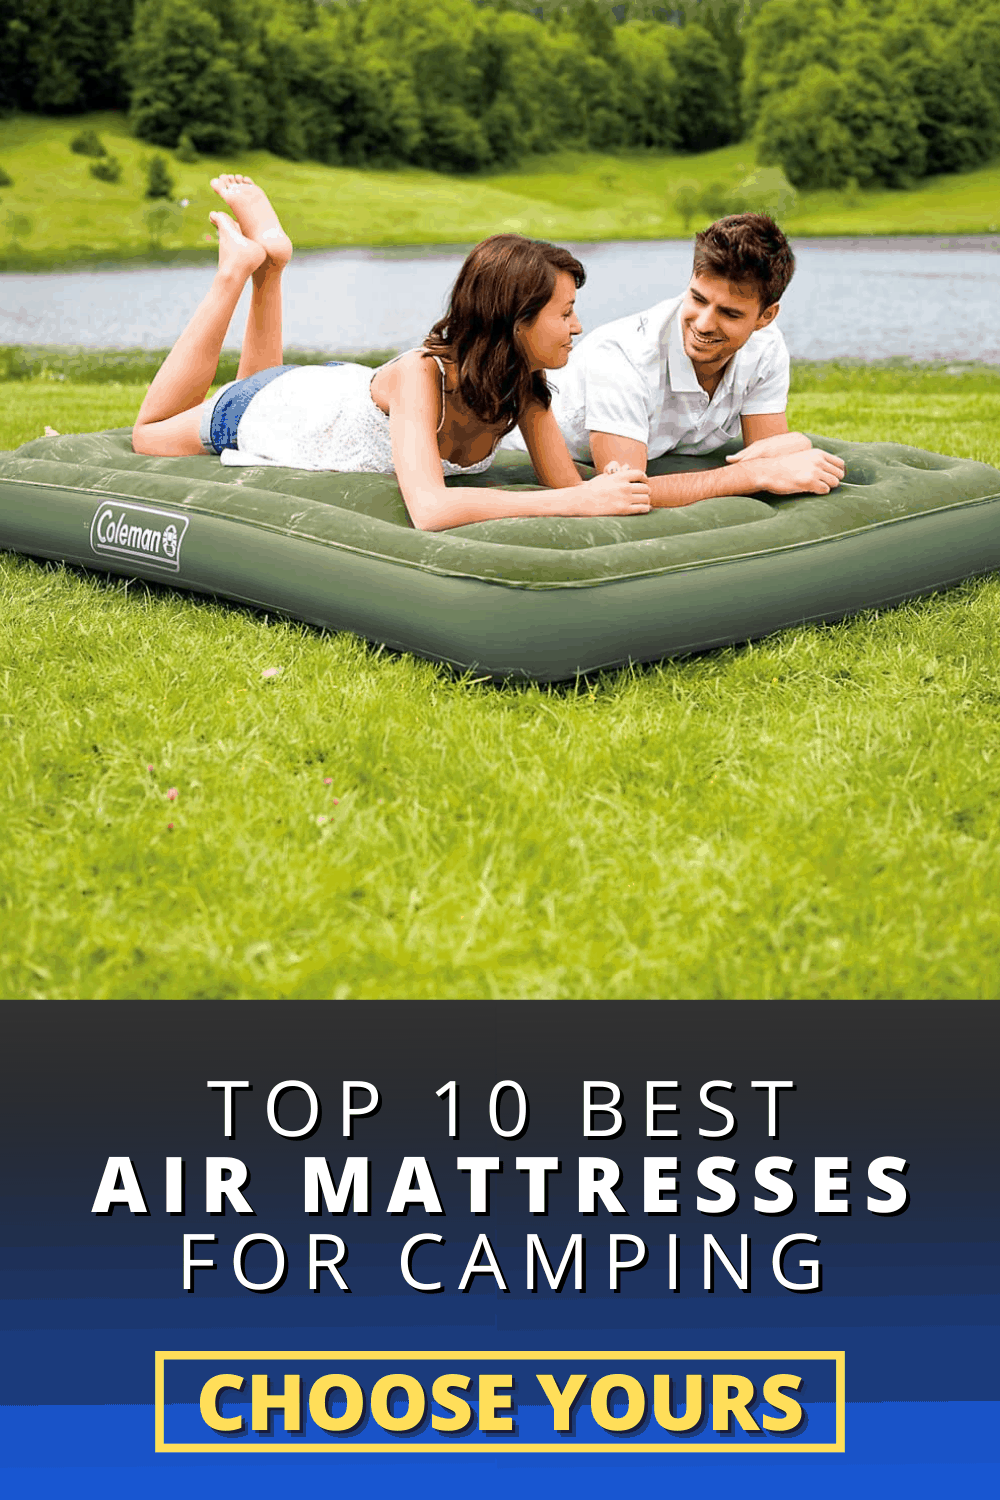 Top 10 Air Mattresses for Camping